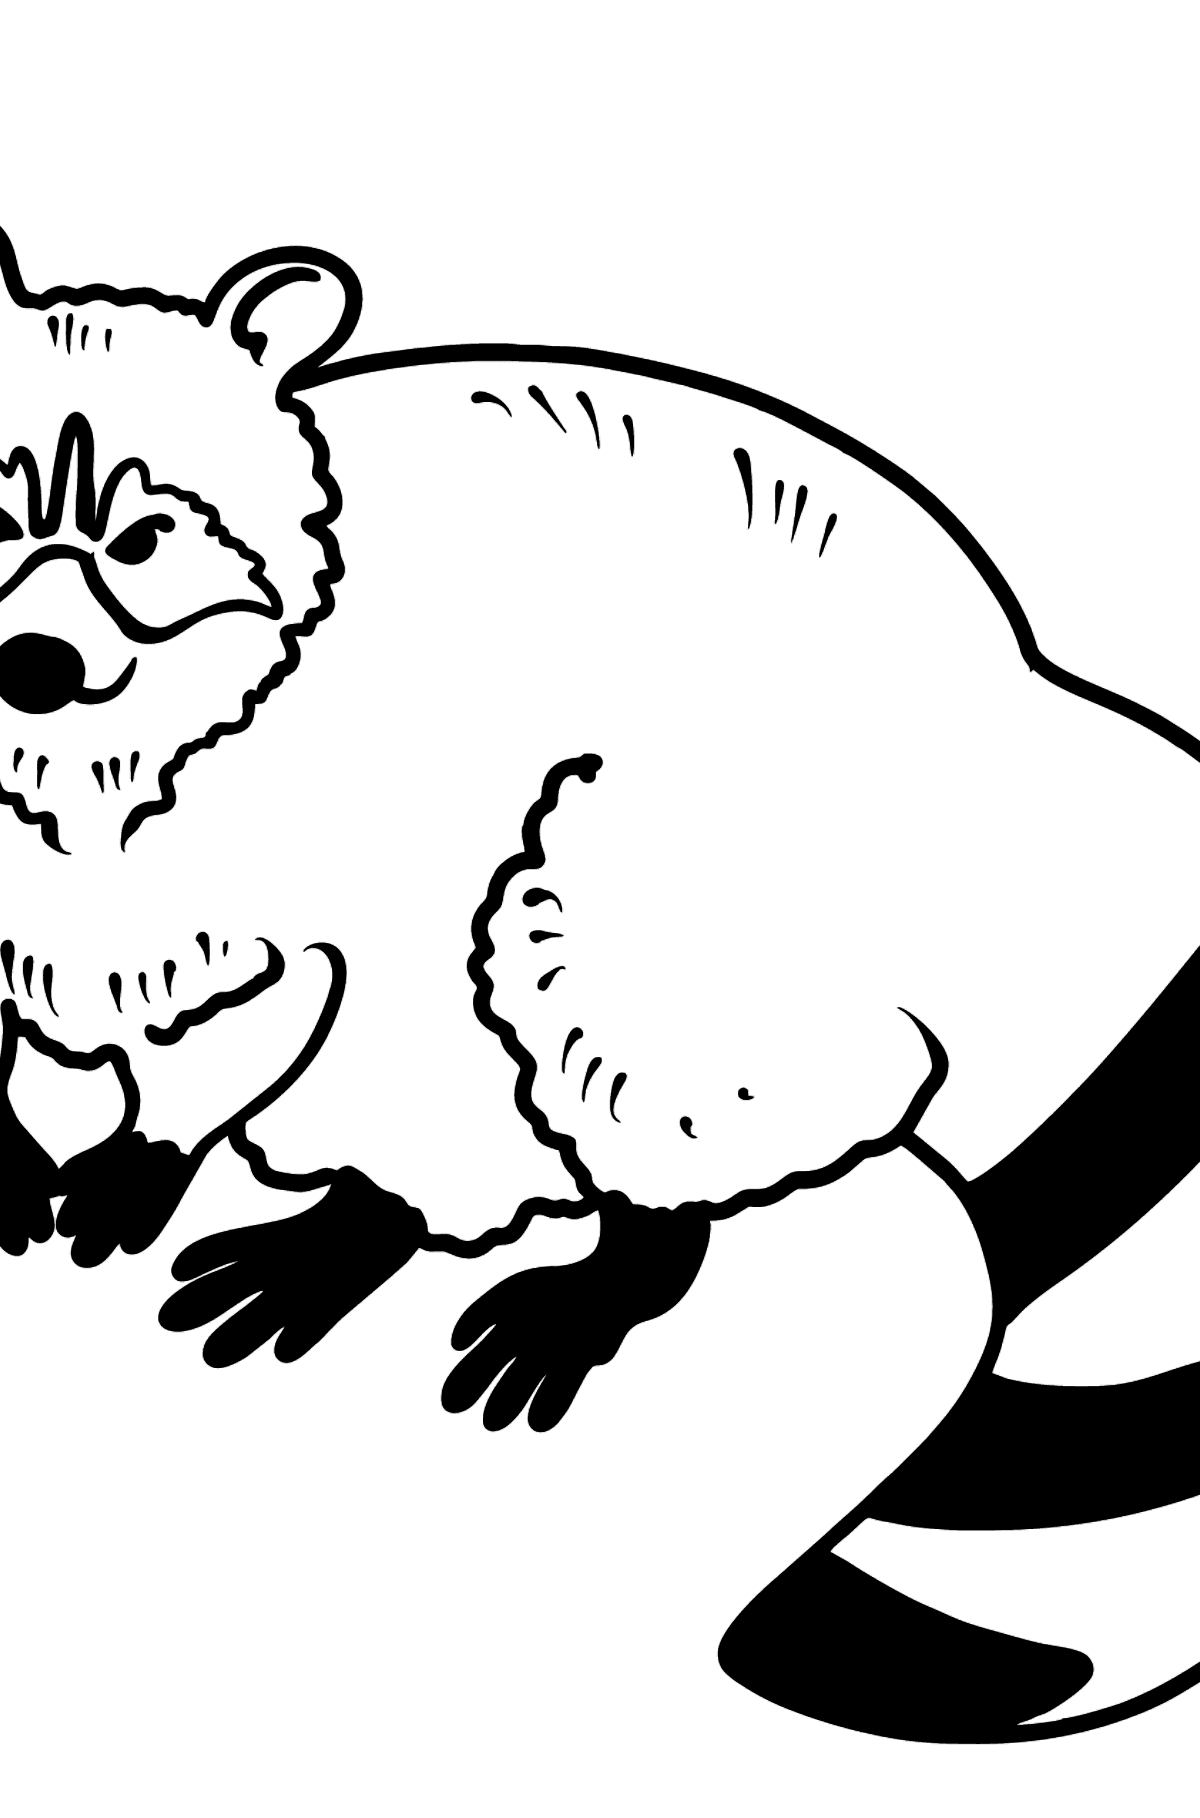 Raccoon coloring page - Coloring Pages for Kids